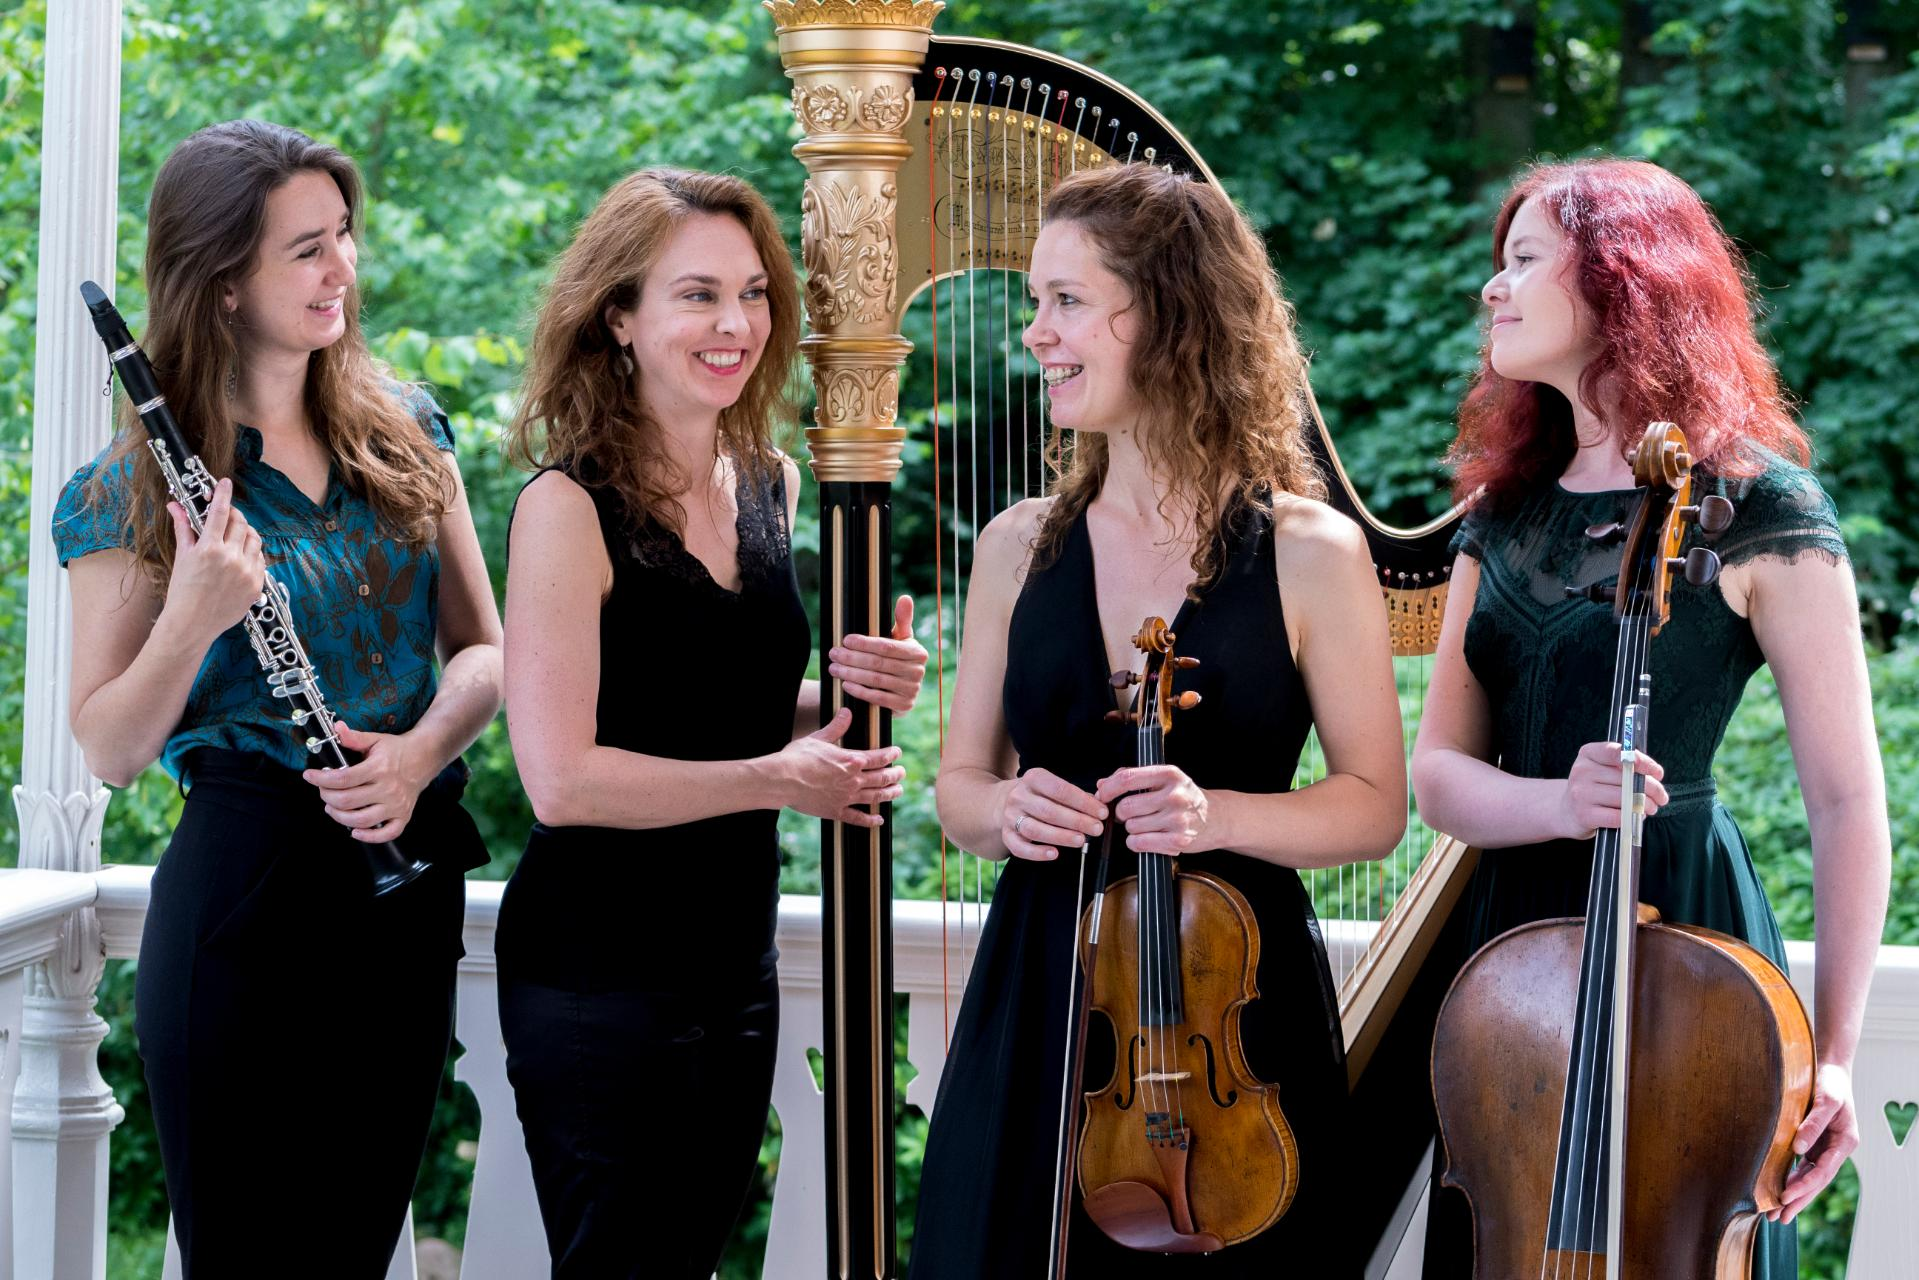 The Dutch Chamber Music Ensemble is presenting a program about women in the International Institute of Social History.